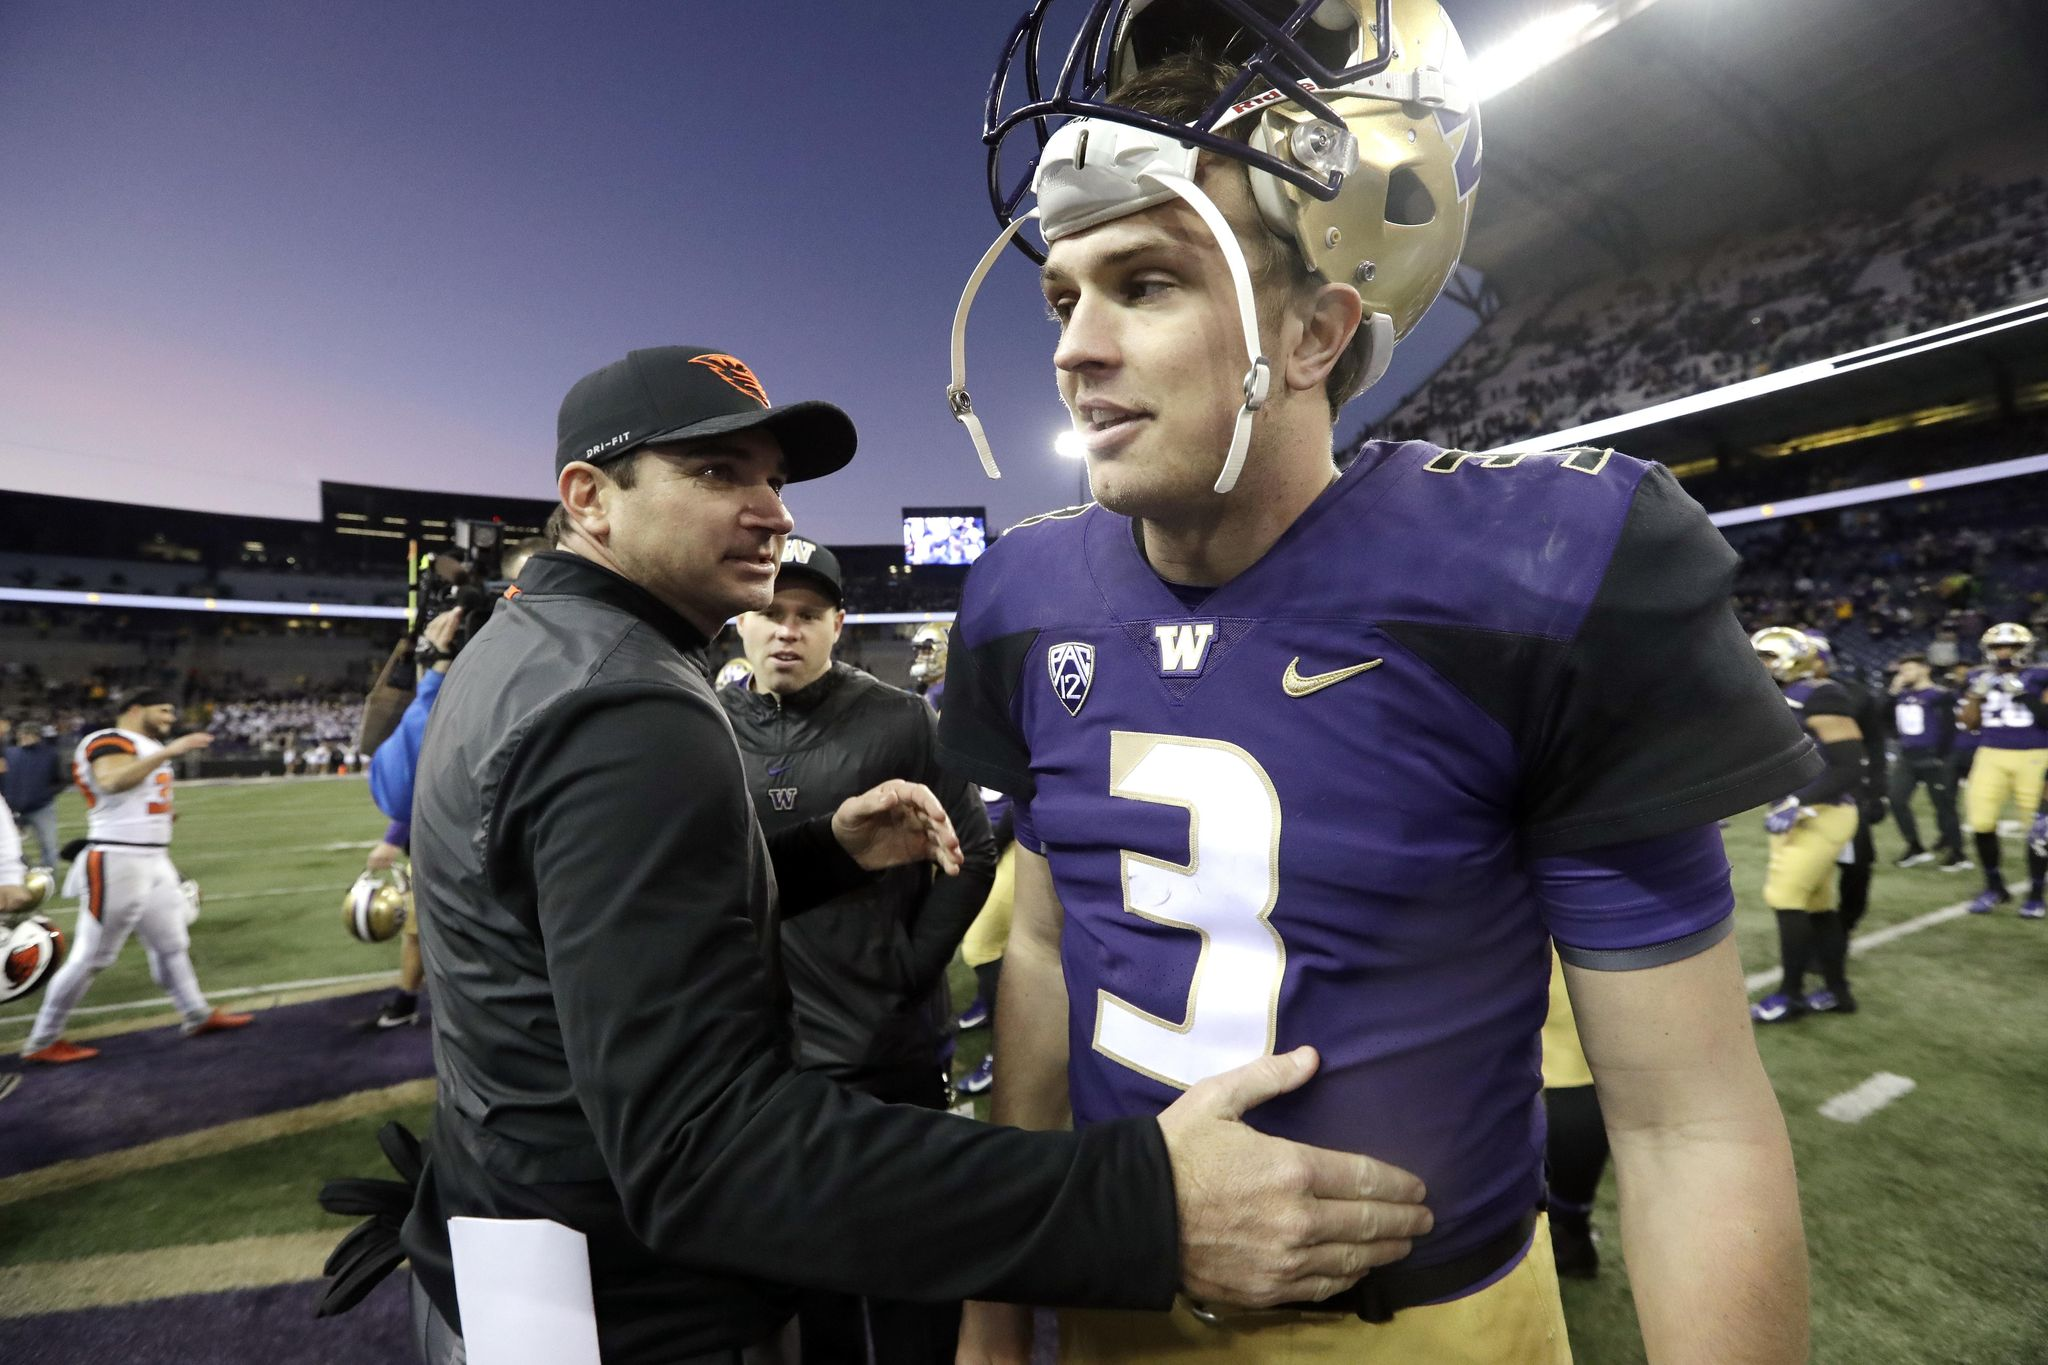 Oregon_st_washington_football_49489_s2048x1365